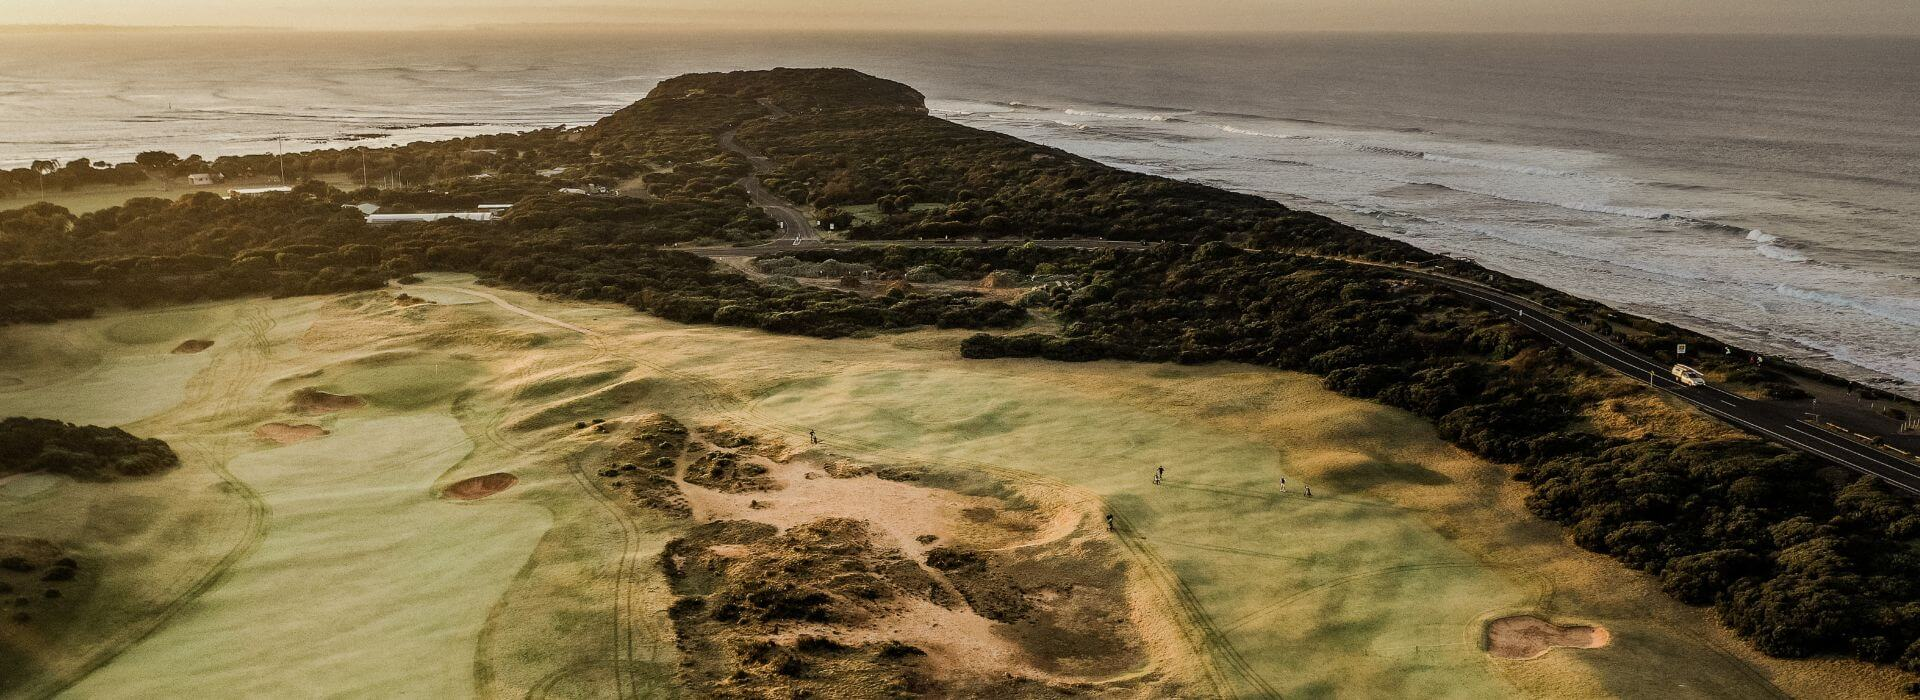 Barwon_Heads_CaddieMag_June2020_HighRes-5_1920_700 (1)